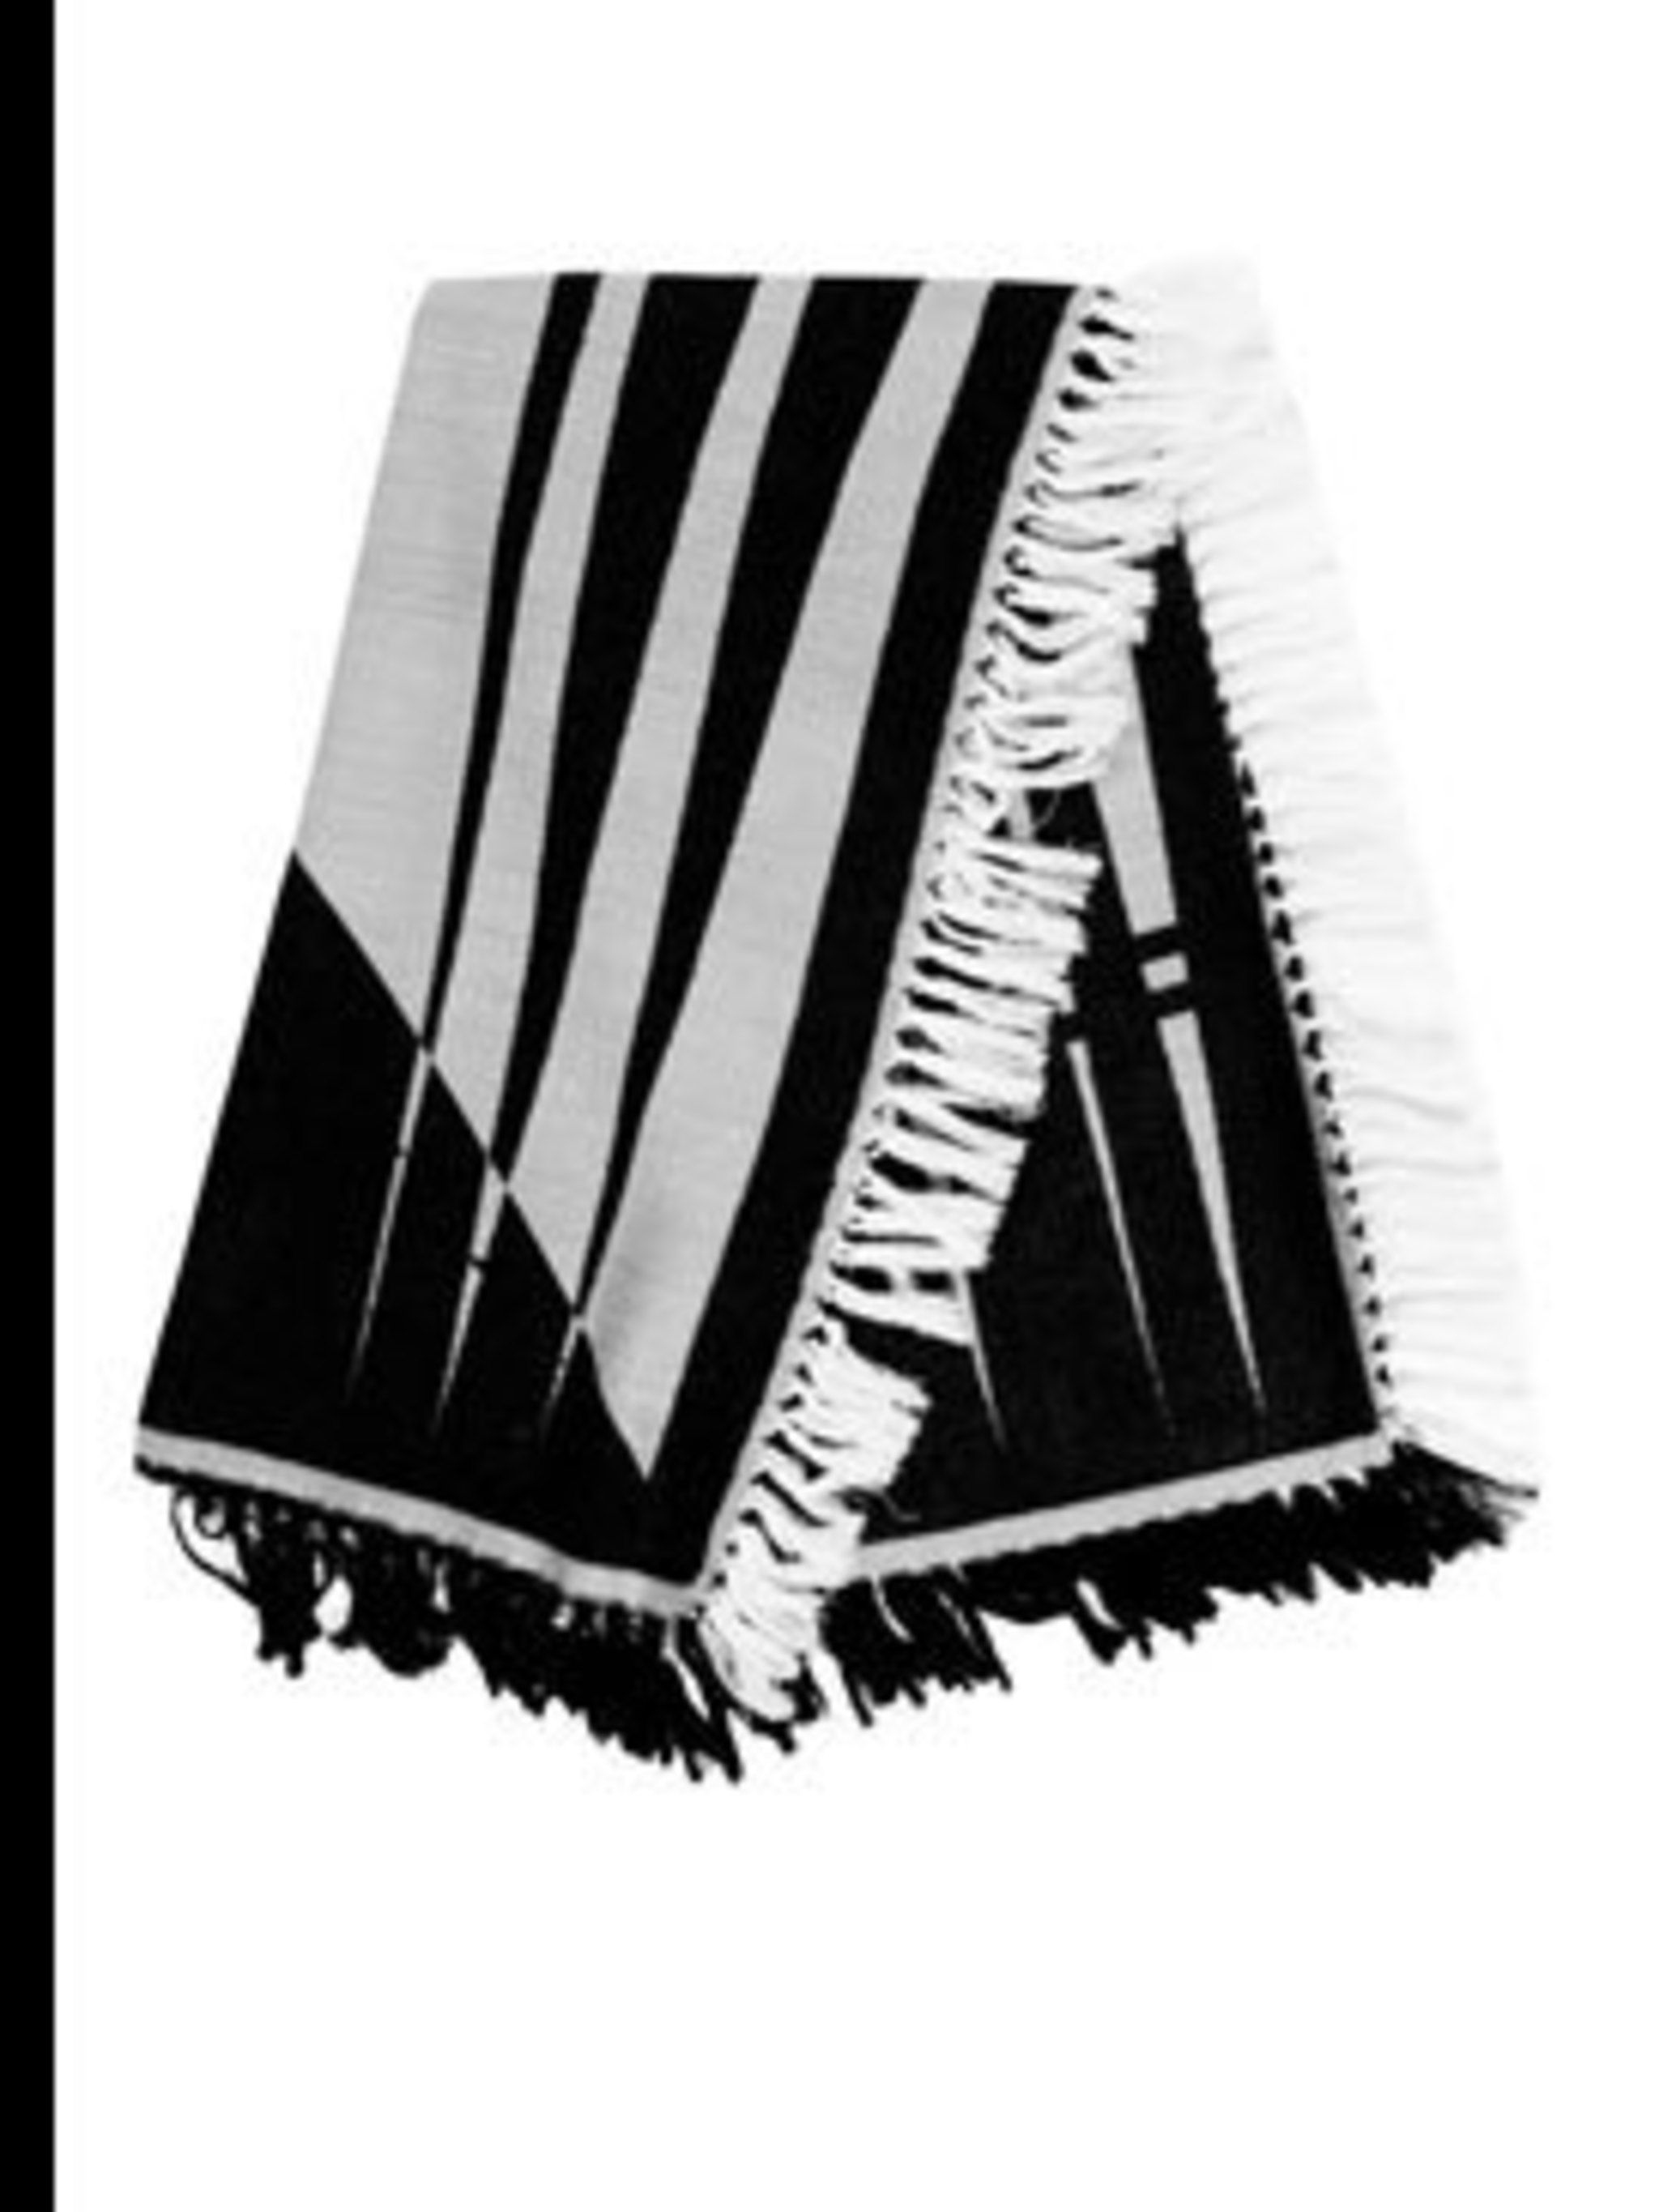 "<p>Black and white scarf, £115, by Henry Vibskov at <a href=""http://www.farfetch.com/shopping/women/designer-henrik-vibskov/search/item10009490.aspx"">Farfetch</a></p>"